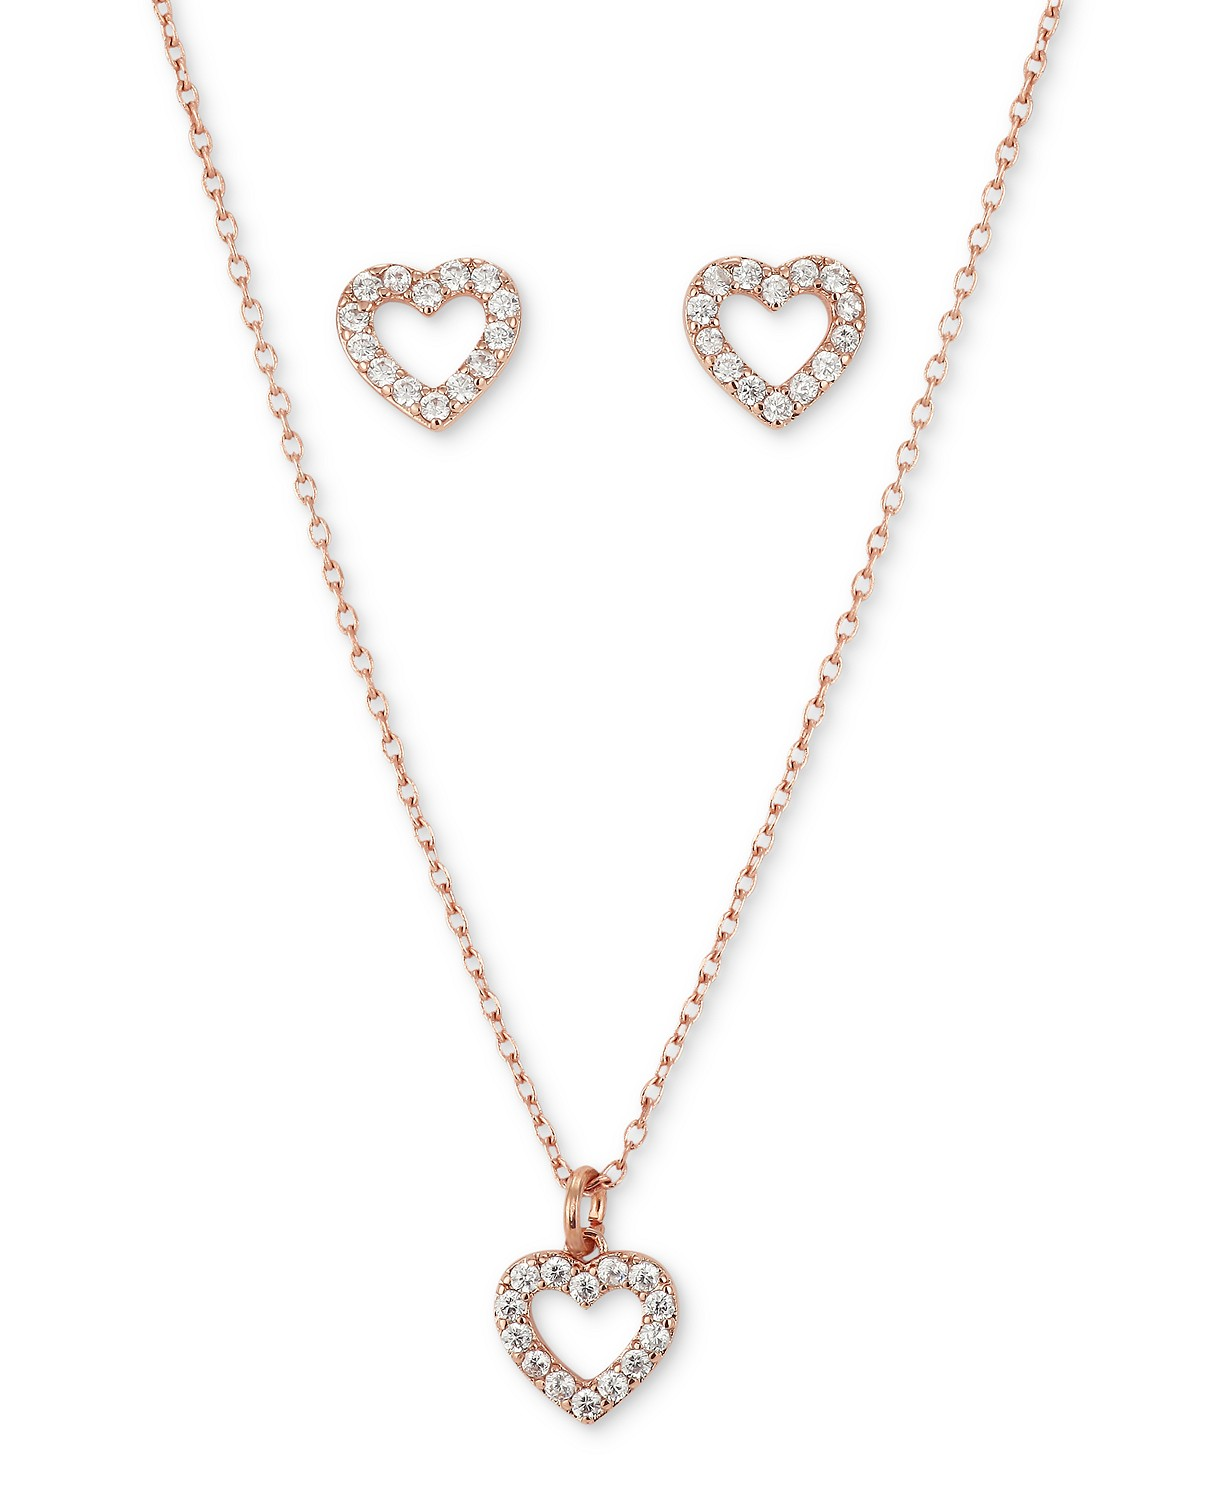 2-Pc. Set Cubic Zirconia Open Heart Pendant Necklace & Matching Stud Earrings in Rose Gold-Flash